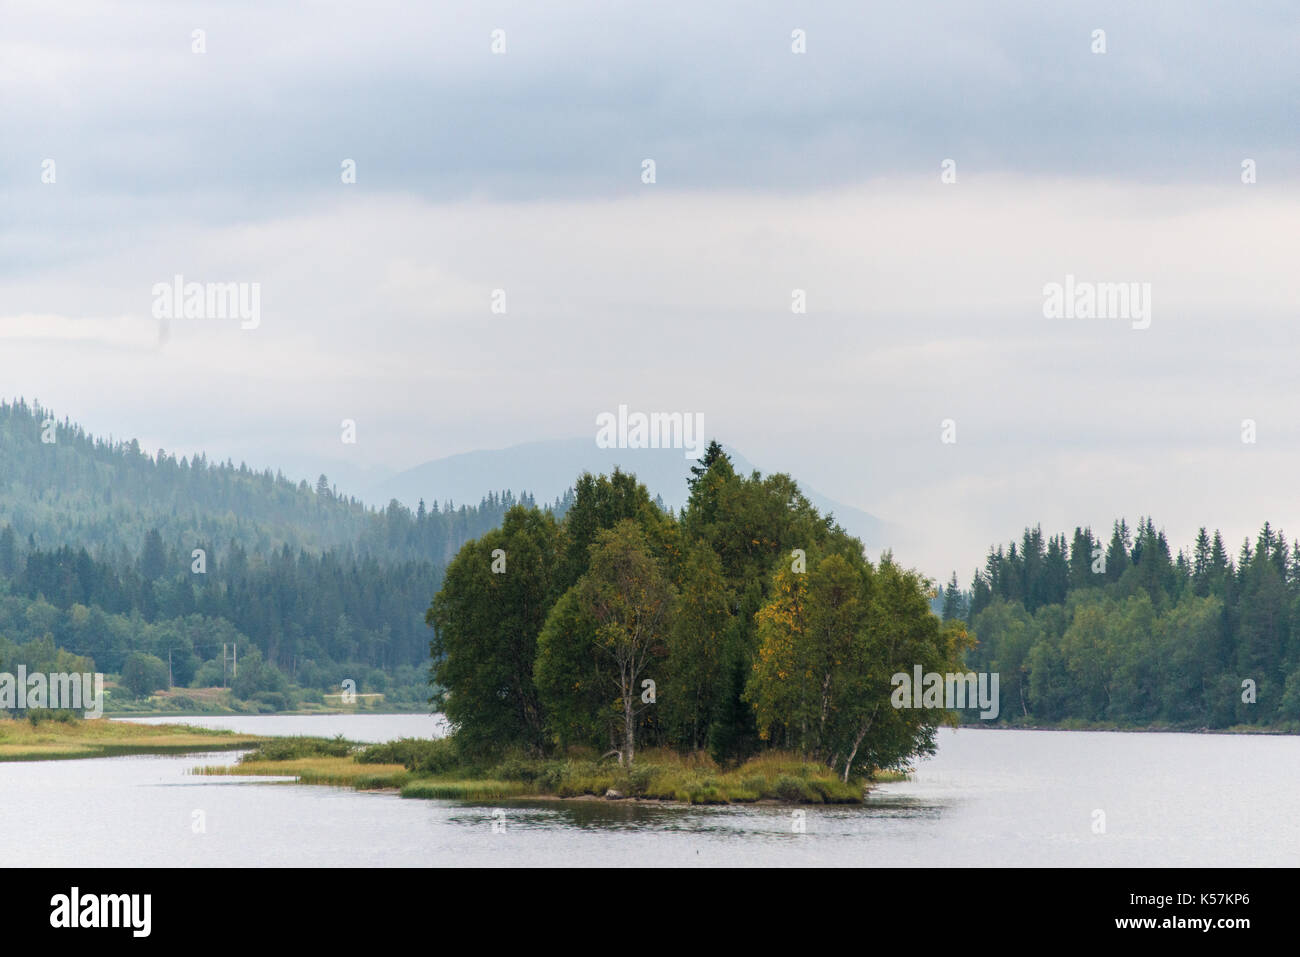 Small island with trees, Norway - Stock Image